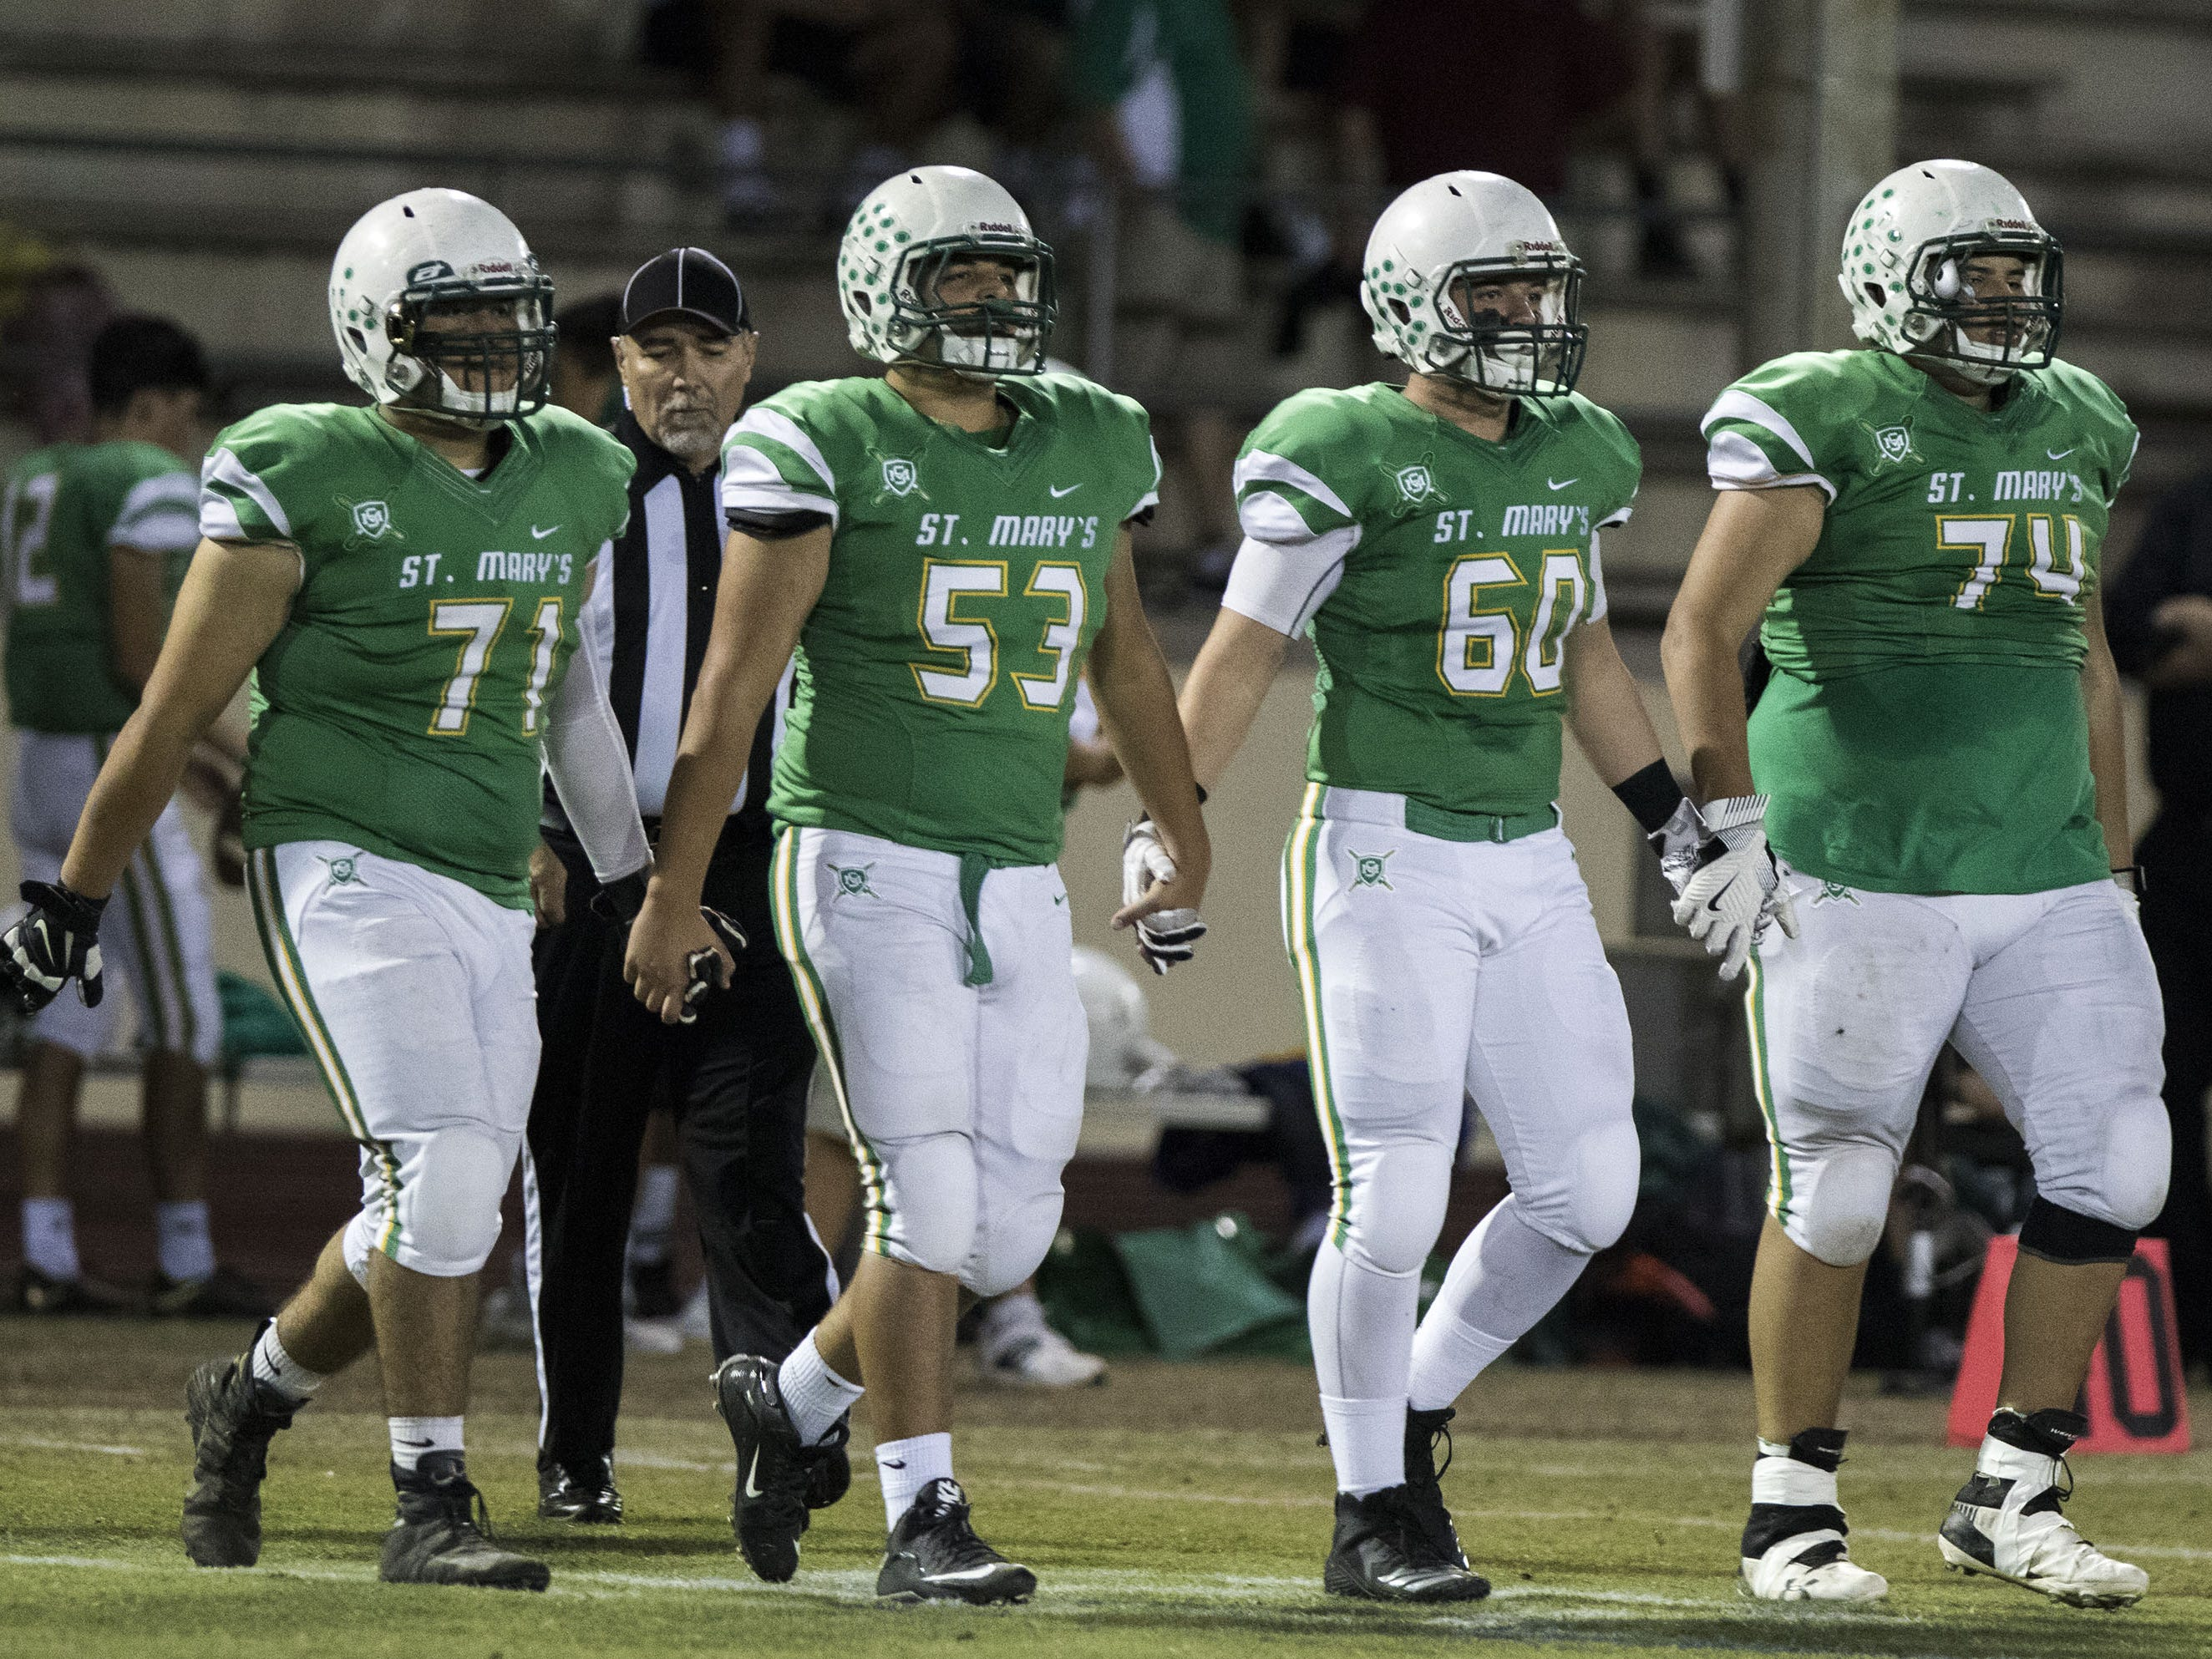 St. Mary's captains (left to right) Manny Valencia, Noah Martinez, Drew Neighbors and Andrew Carreon walk to the coin toss during their game against Greenway at Phoenix College in Phoenix Friday, Oct. 12, 2018. #azhsfb